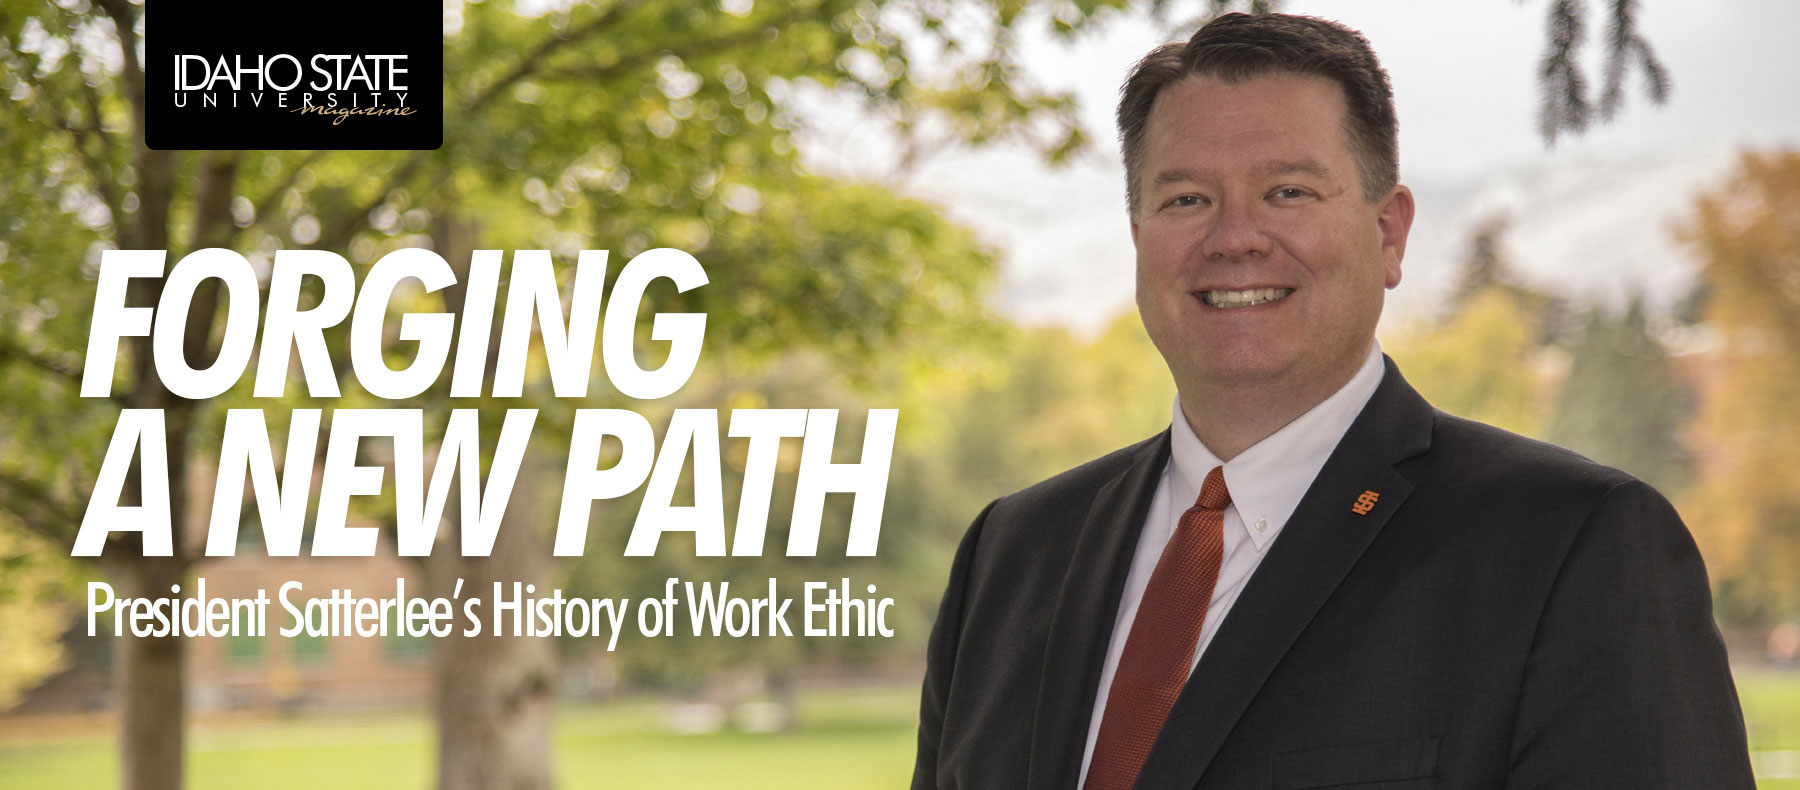 Forging a new path. President Saterlee's history of work ethic.